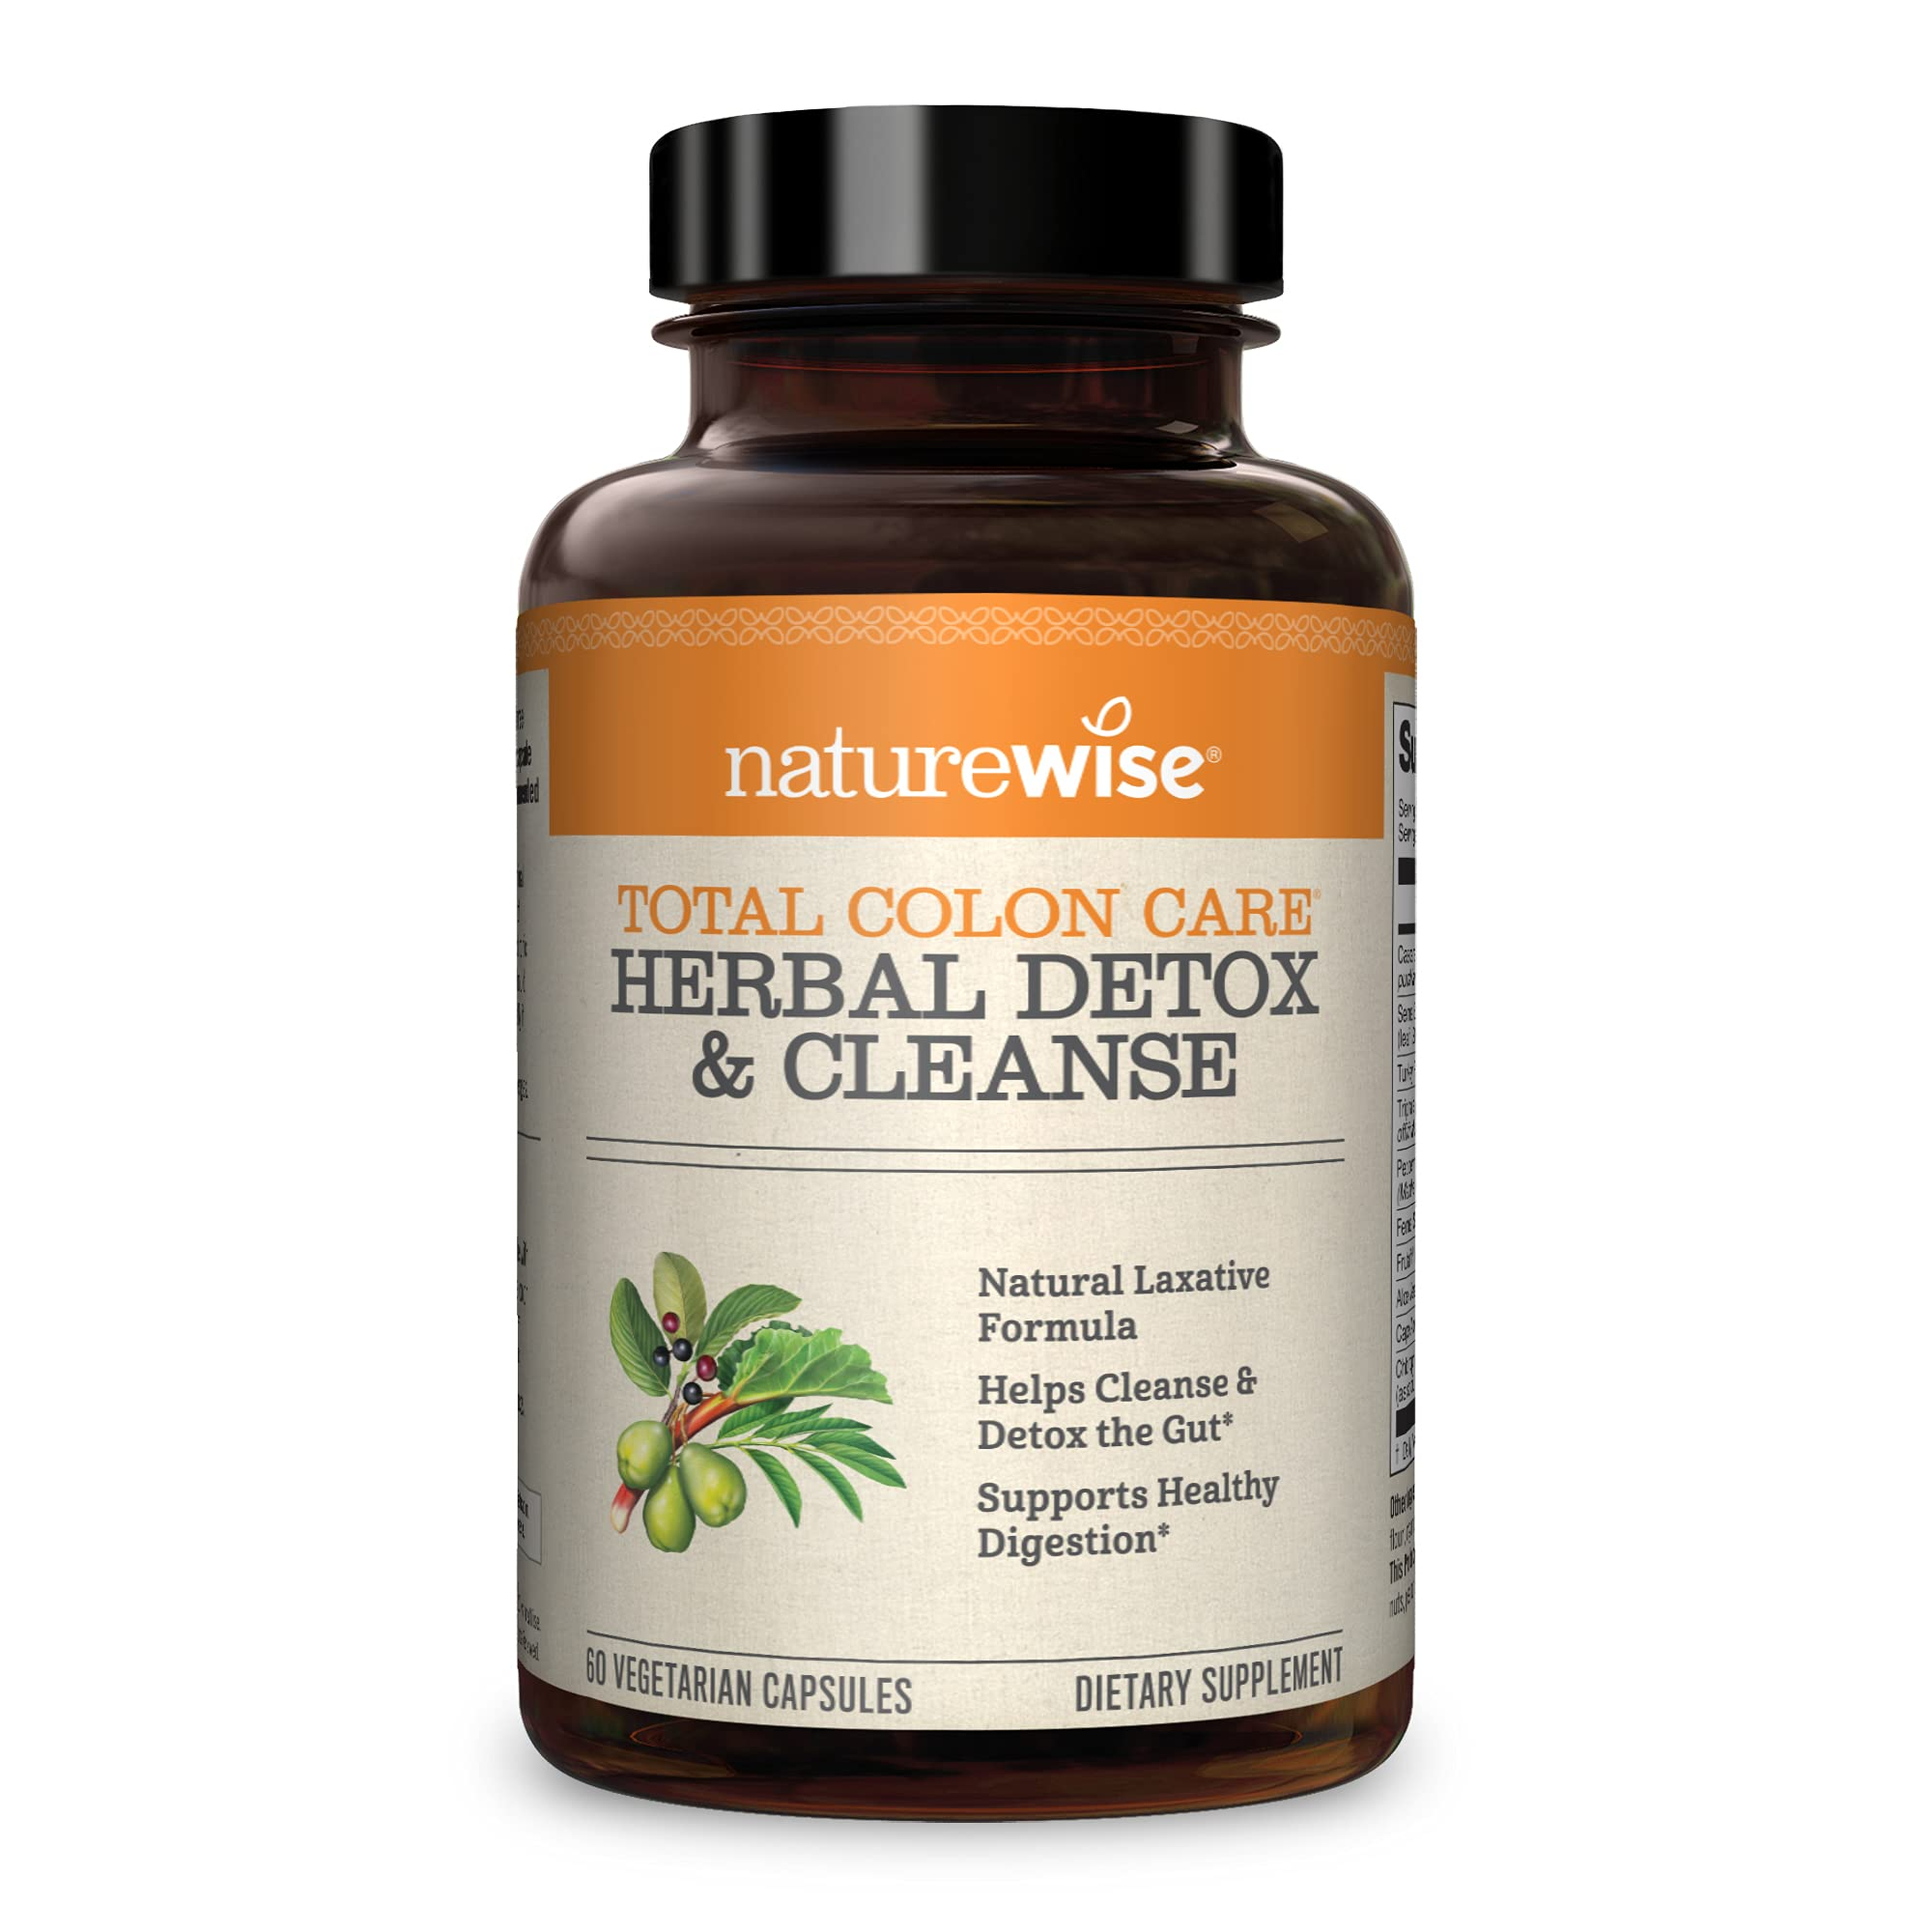 NatureWise Herbal Detox Cleanse Laxative Supplements | Natural Colon Cleanser Herb & Fiber Blend for Constipation Relief, Toxin Rid, Gut Health, & Weight Loss Support [1 Month Supply - 60 Capsules]